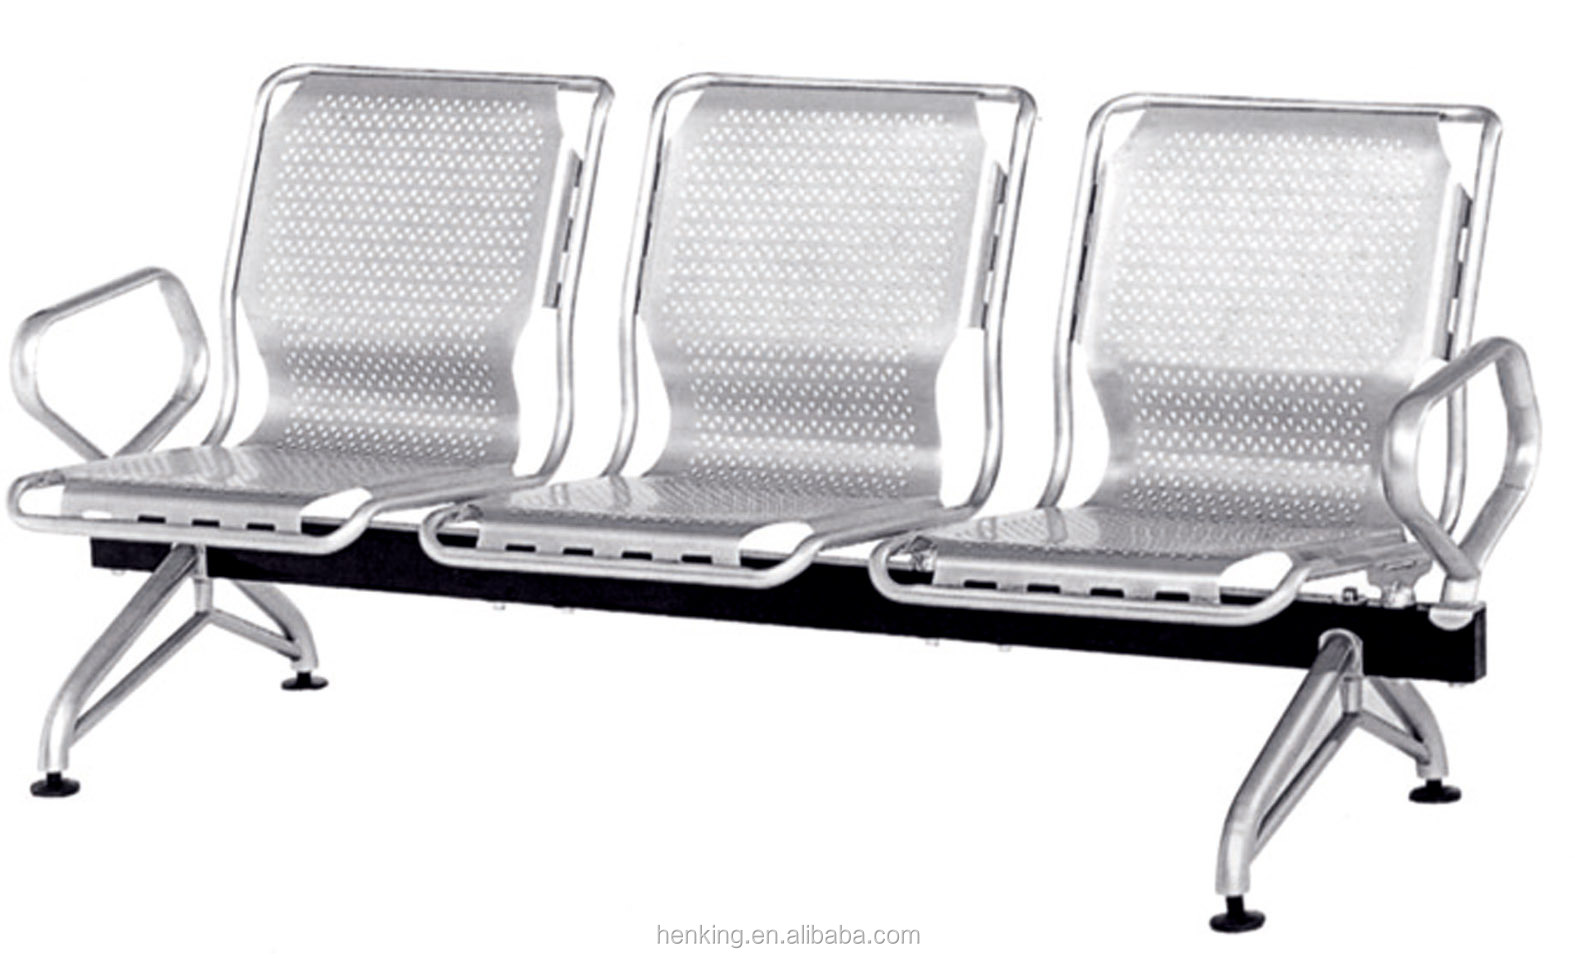 steel airport chair bedroom pictures henking high quality 3 seater stainless